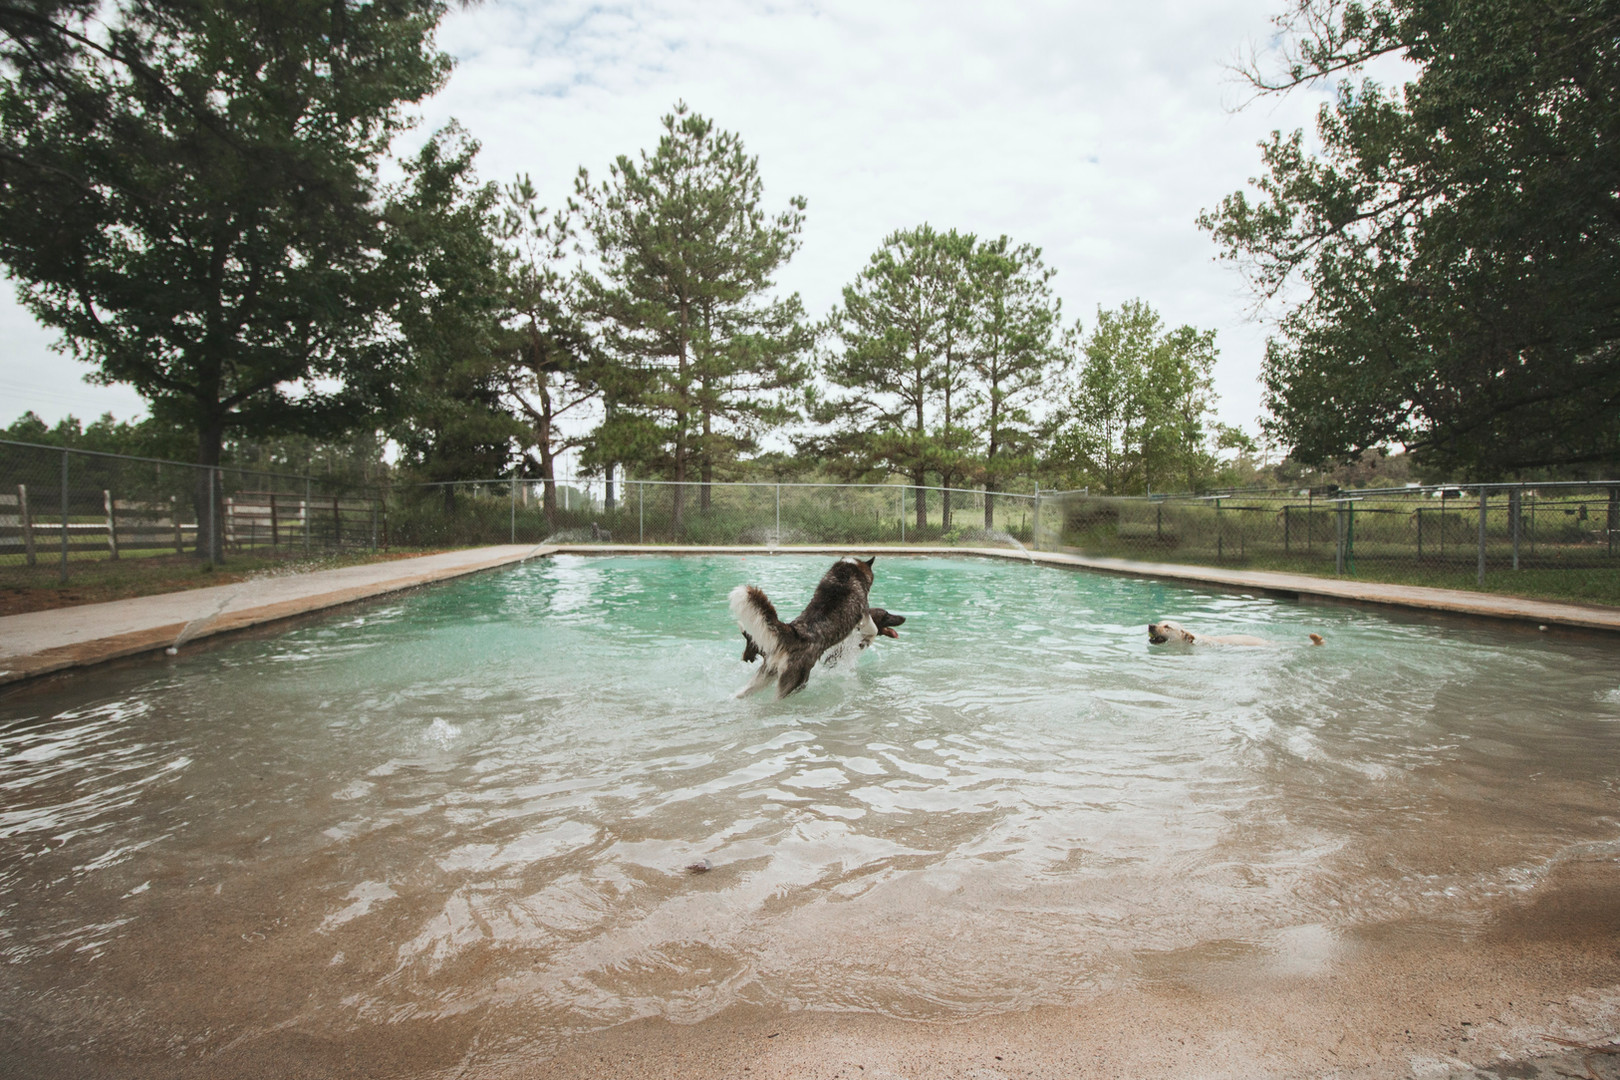 The Barkly Dog Daycare: Dogs Enjoy a 30,000 Gallon Pool!